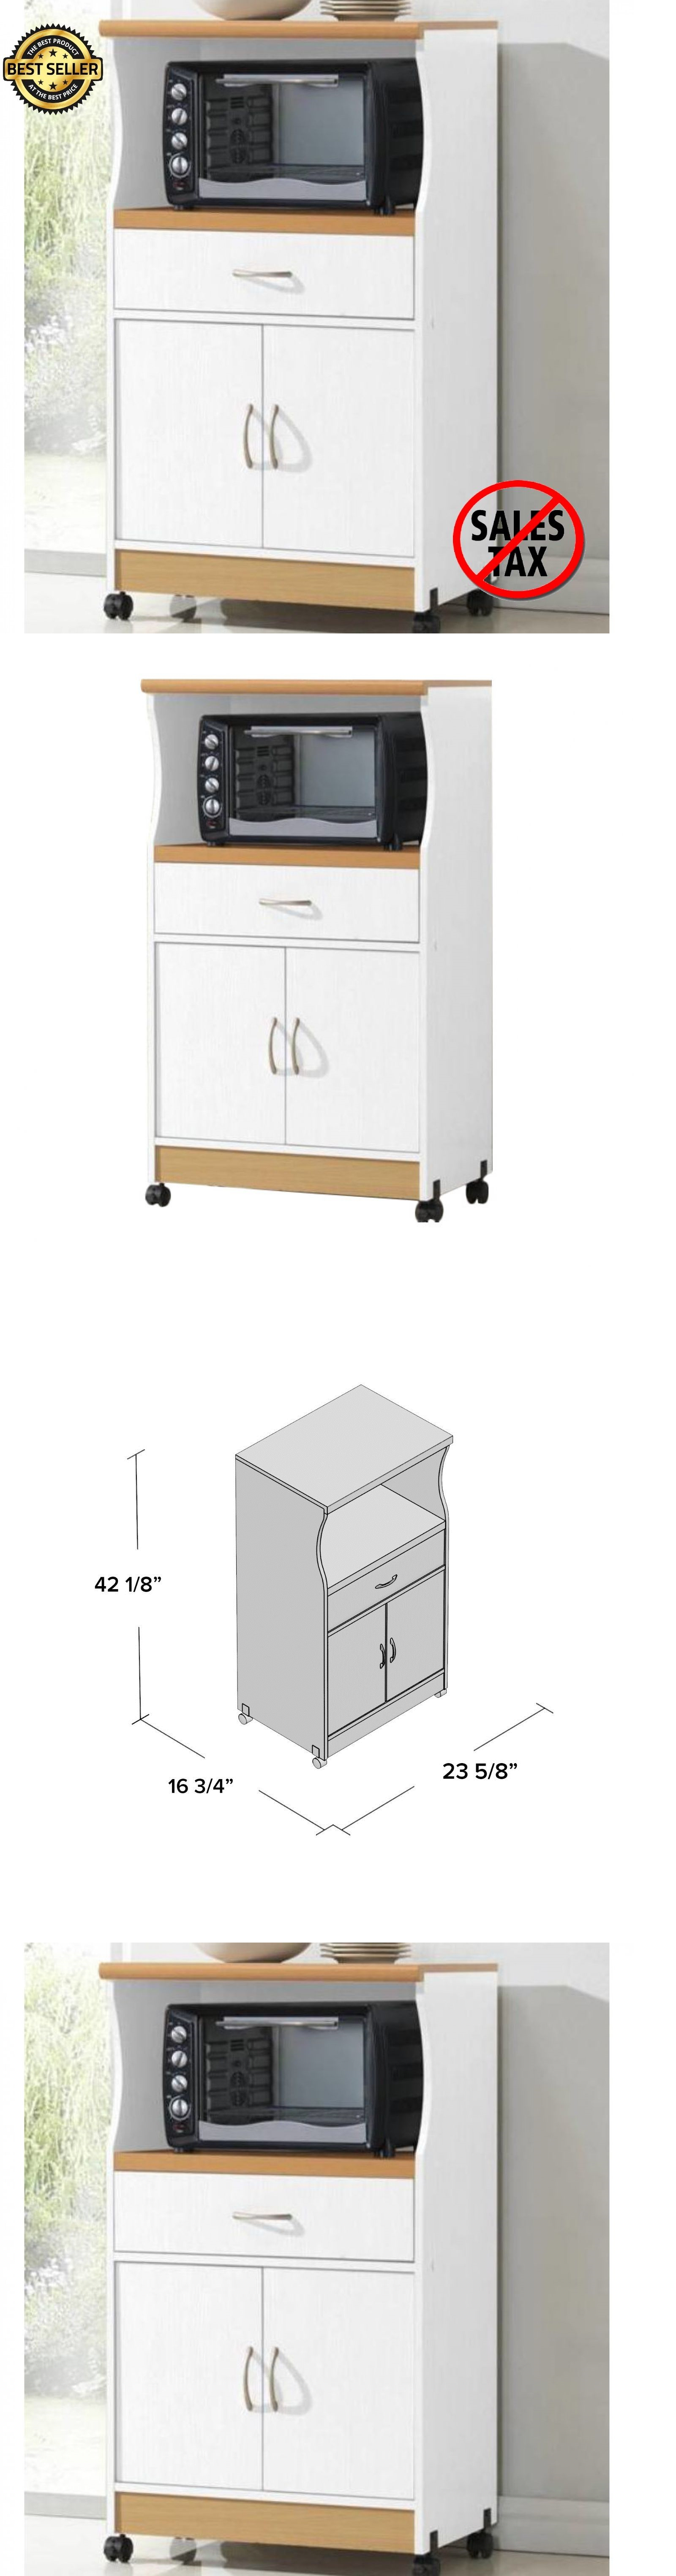 Kitchen Islands Kitchen Carts 115753: Rolling Microwave Cart Wood ...